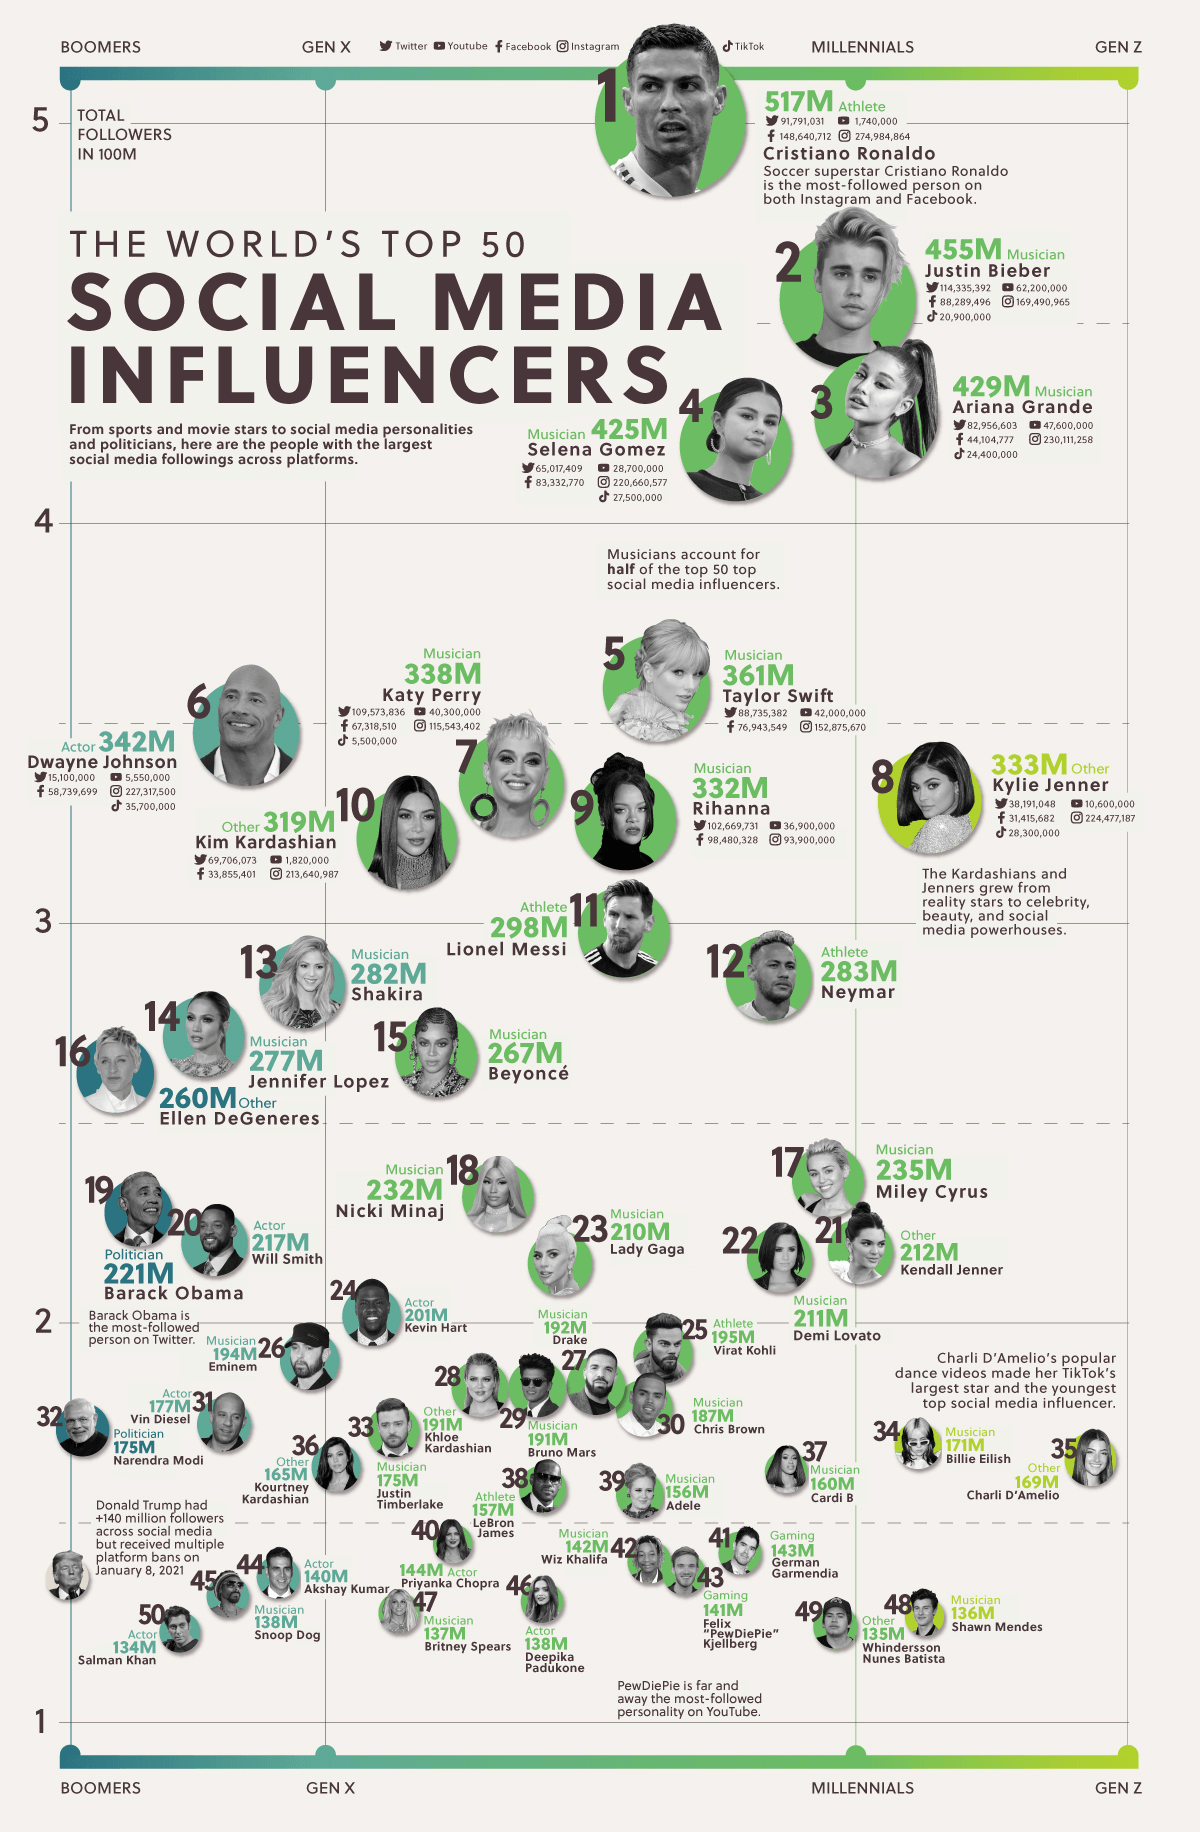 The World's Top 50 Social Media Influencers